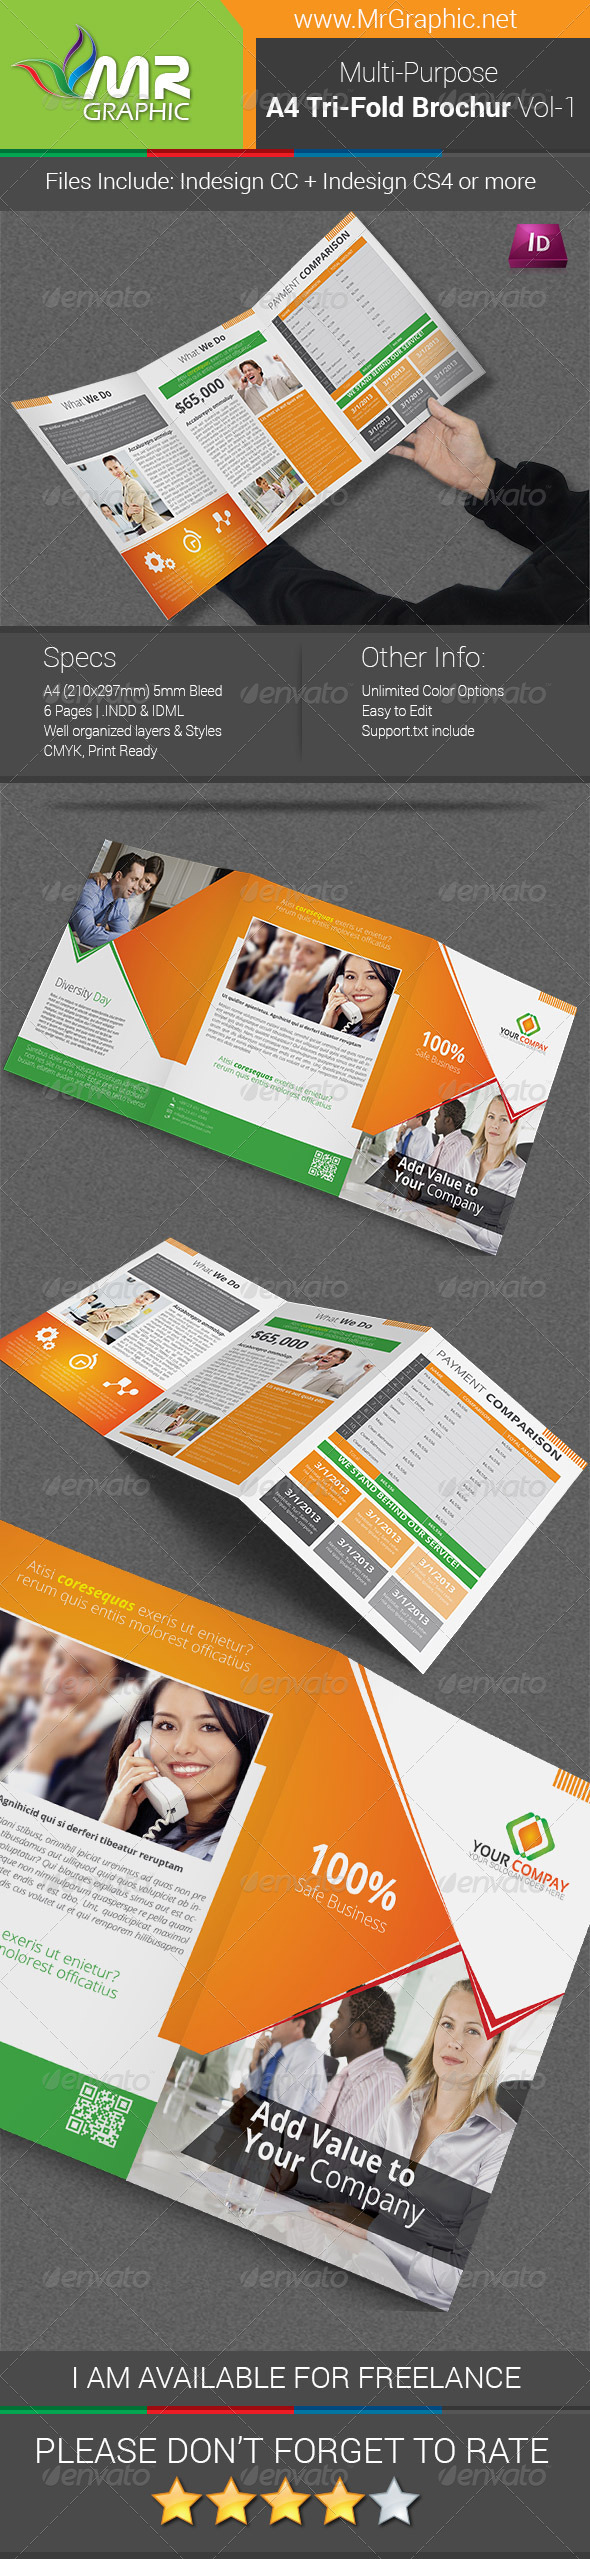 GraphicRiver Multipurpose A4 Tri-Fold Brochure Template Vol-1 6863613